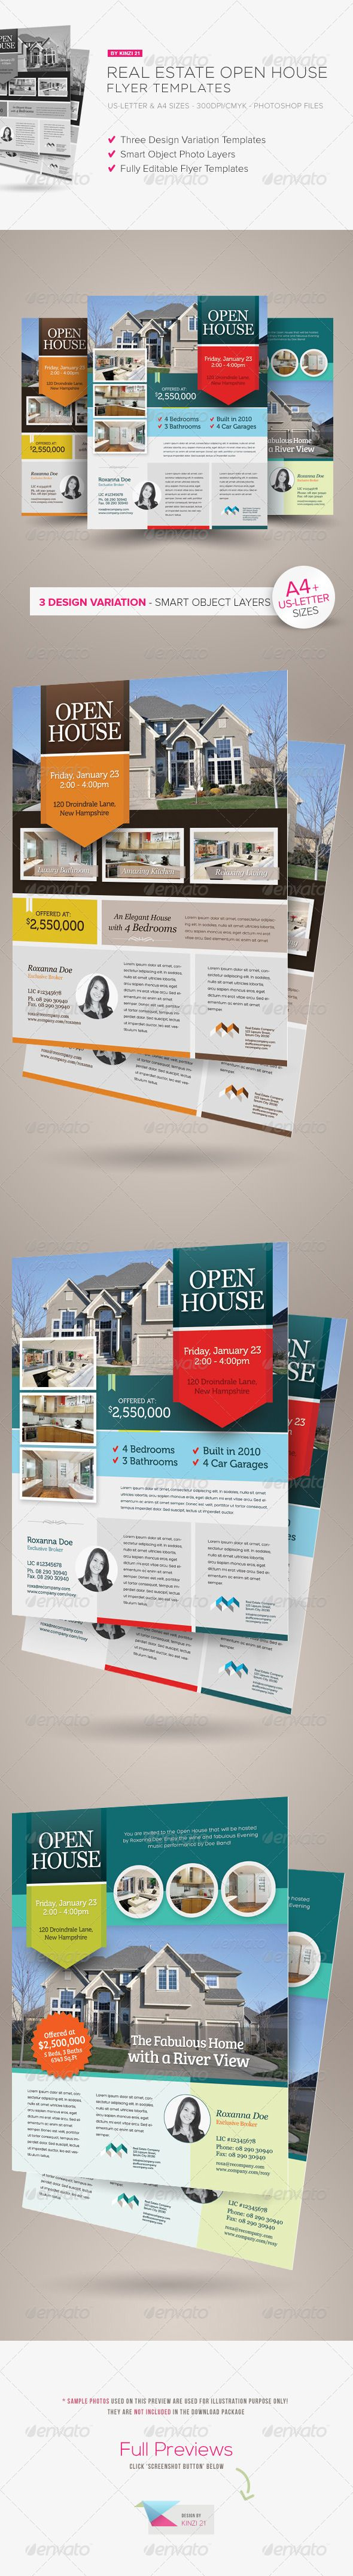 Real Estate Open House Flyers  File Format Logo Templates And Serif